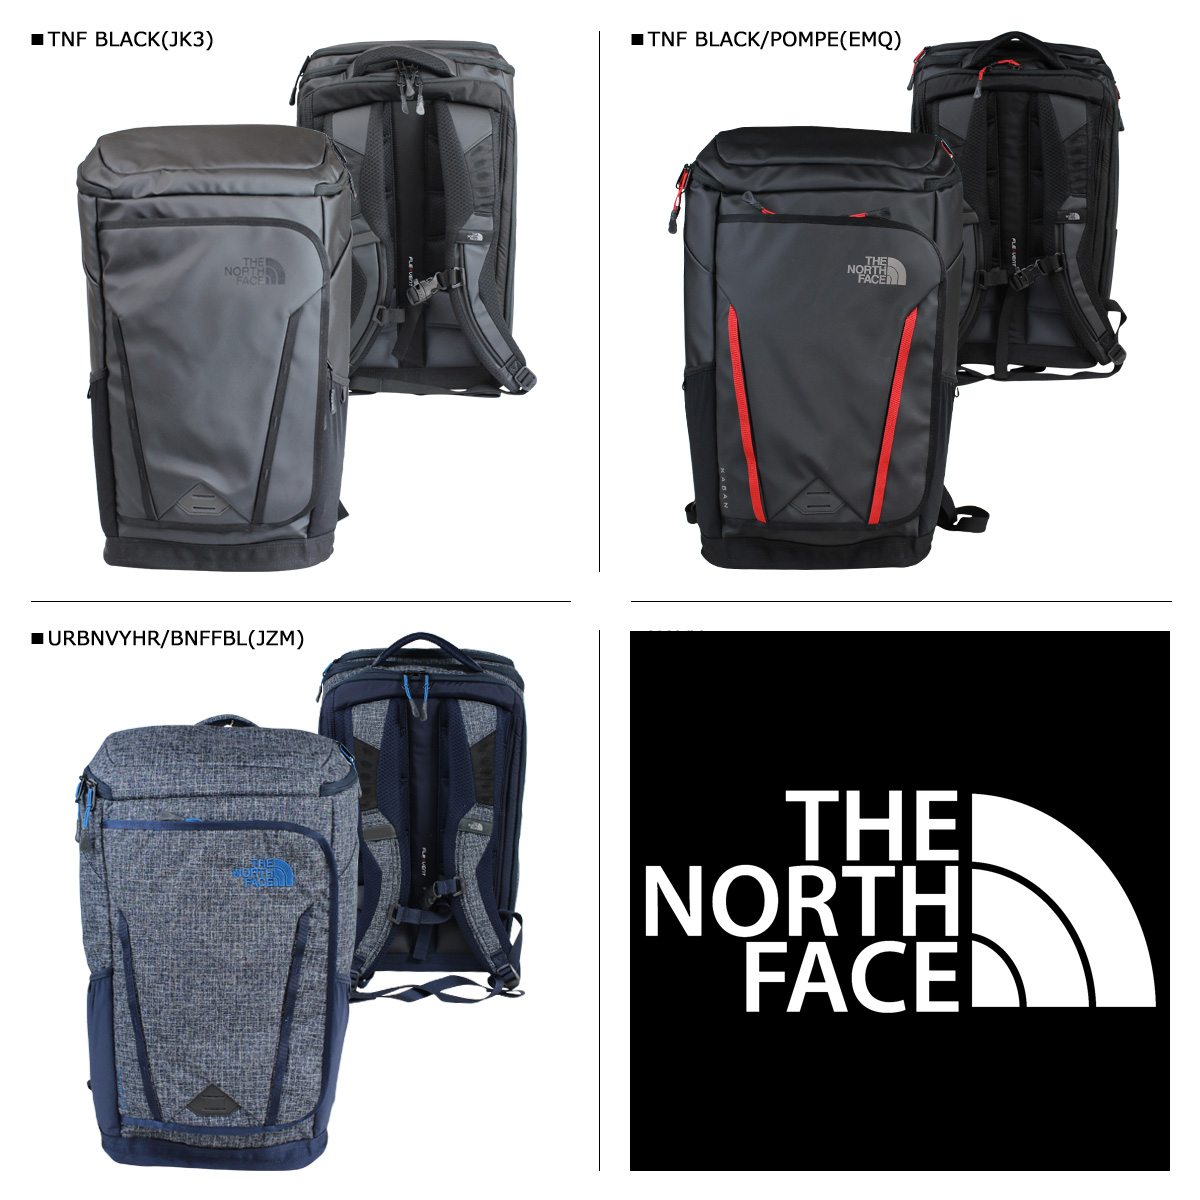 85a3b4ed0 [SOLD OUT] THE NORTH FACE north face rucksack backpack KABAN TRANSIT  BACKPACK 25 l CWV9 mens ladies [8/2 Add in stock]